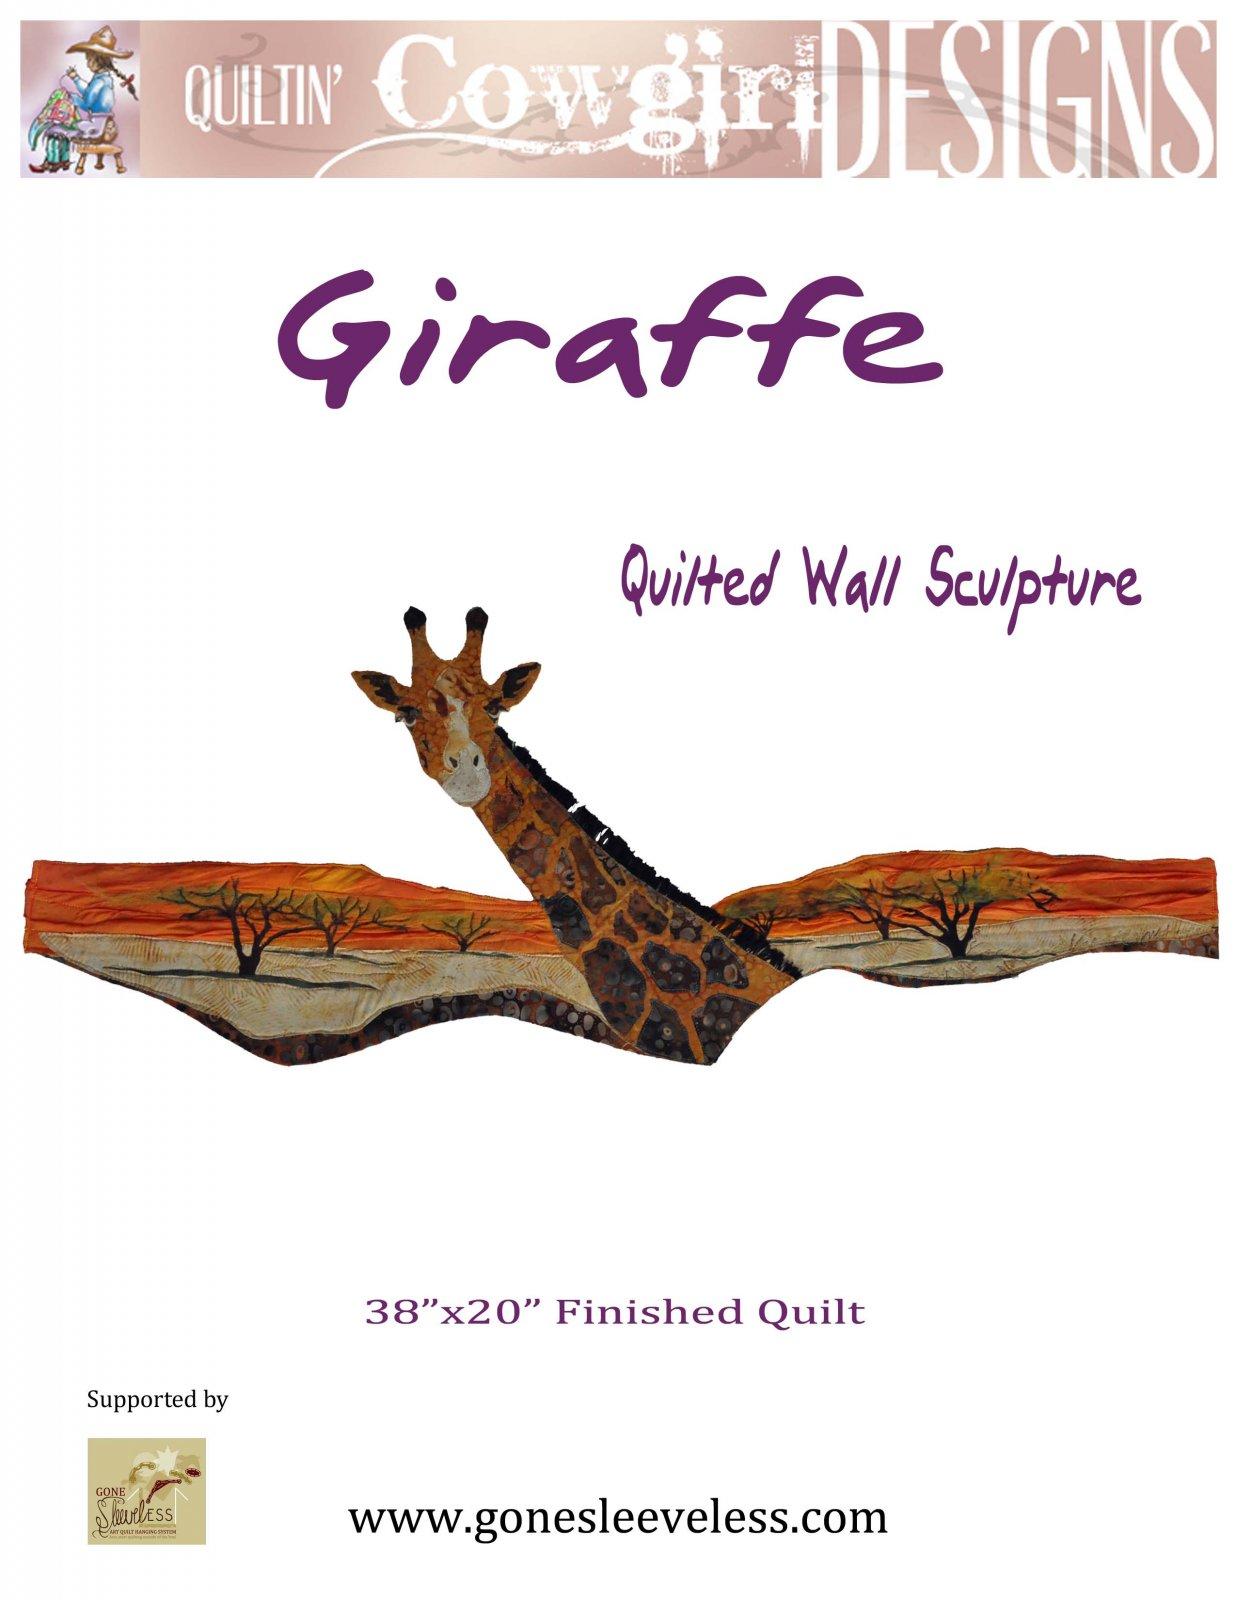 GIRAFFE ON THE SERENGETI QUILTED WALL SCULPTURE